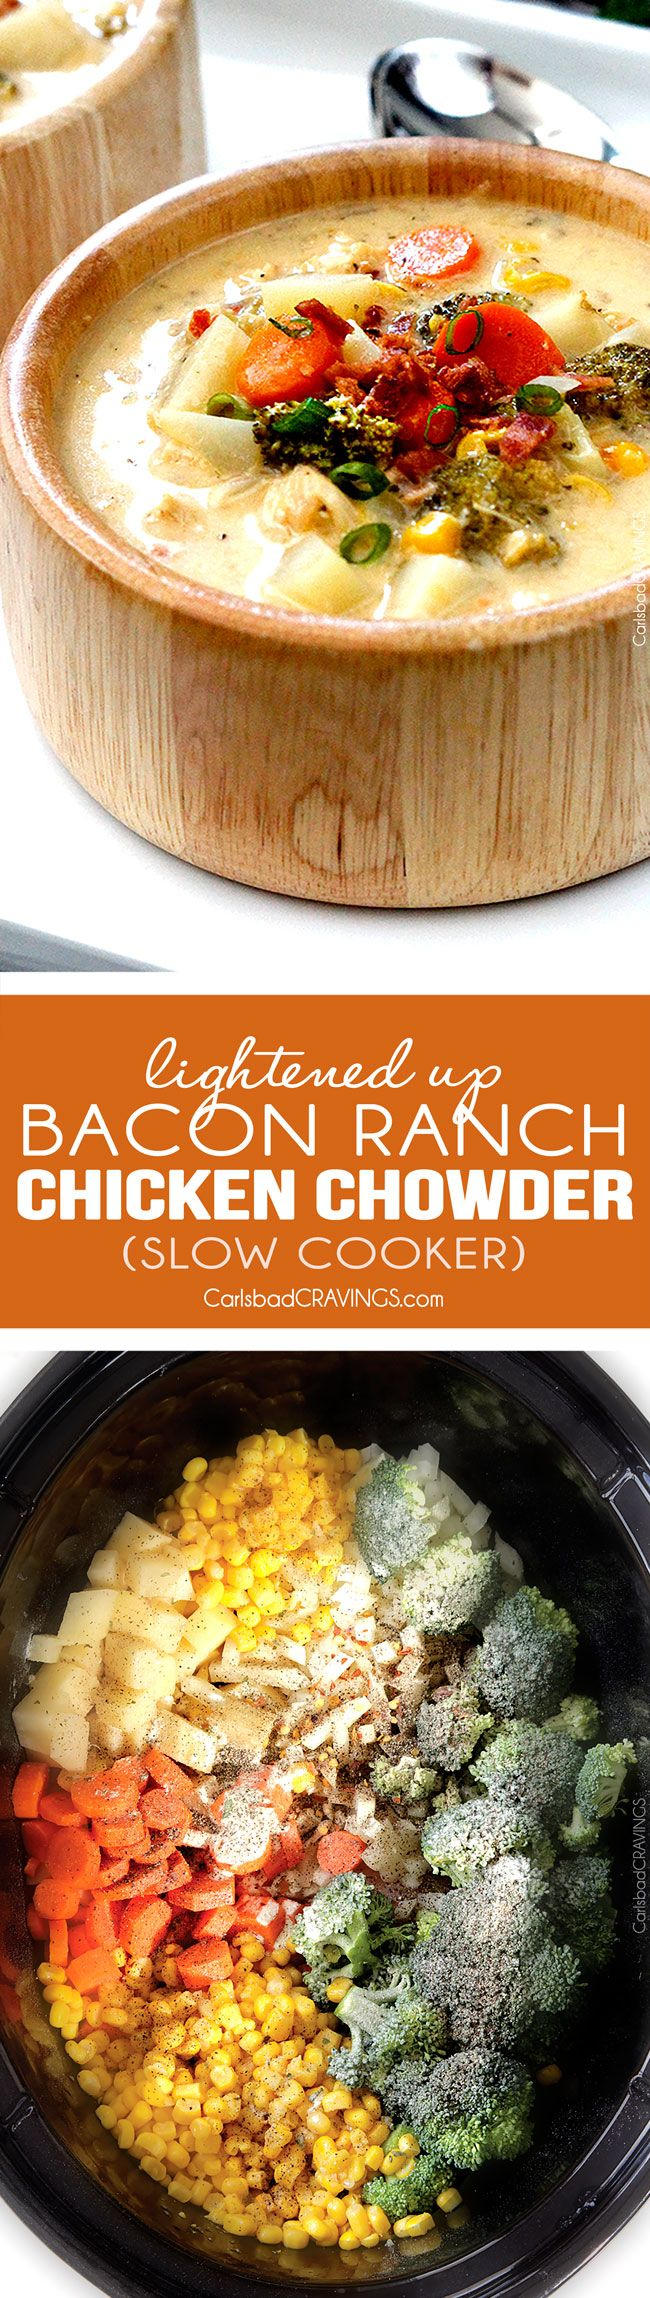 Bacon Ranch Chicken Chowder (Slow Cooker)